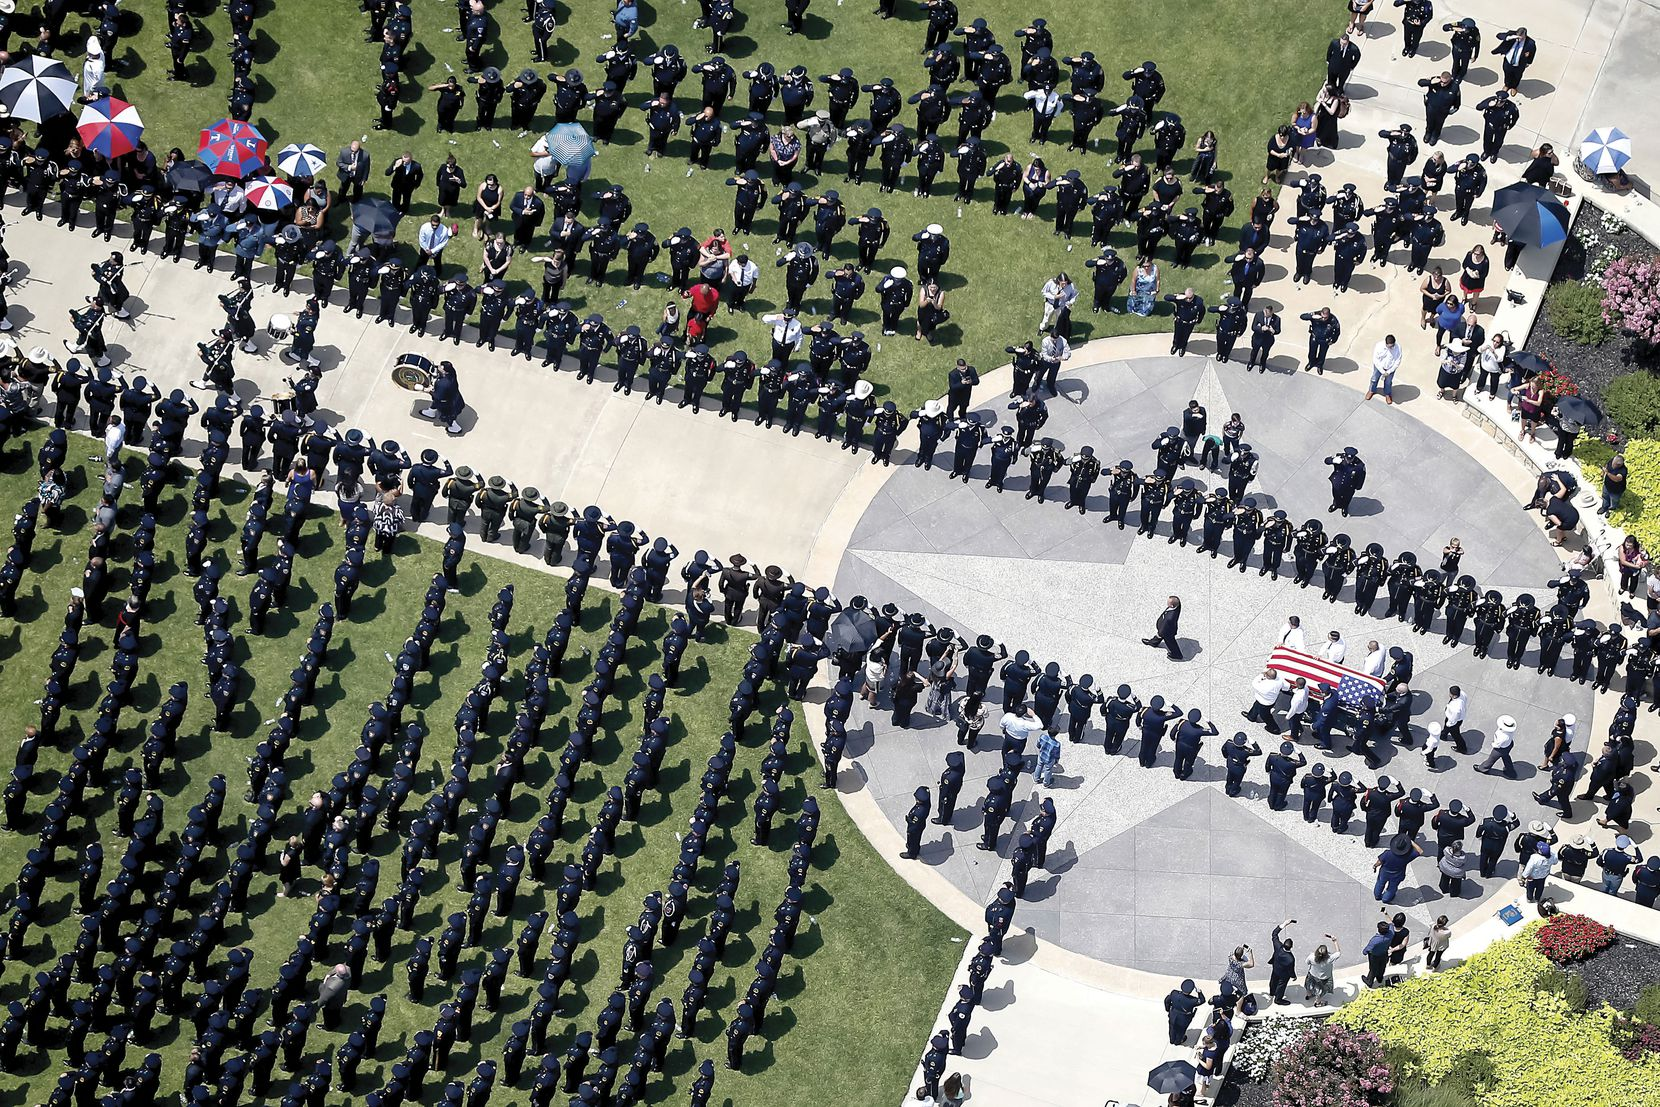 The casket of slain Dallas police officer Patrick Zamarripa was carried carried by pallbearers at Dallas-Fort Worth National Cemetery on July 16.